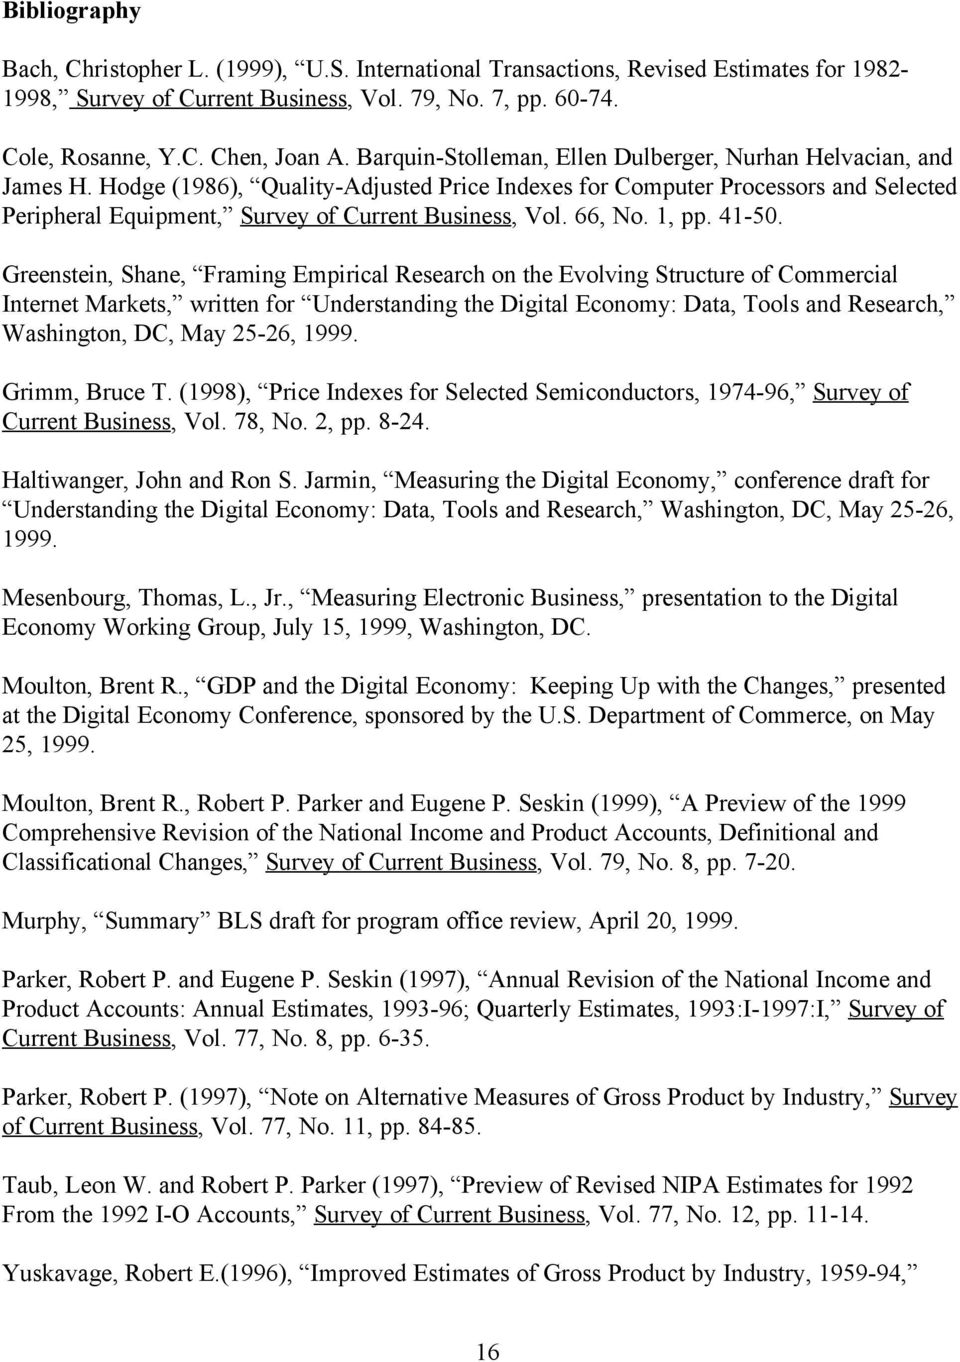 Hodge (1986), Quality-Adjusted Price Indexes for Computer Processors and Selected Peripheral Equipment, Survey of Current Business, Vol. 66, No. 1, pp. 41-50.